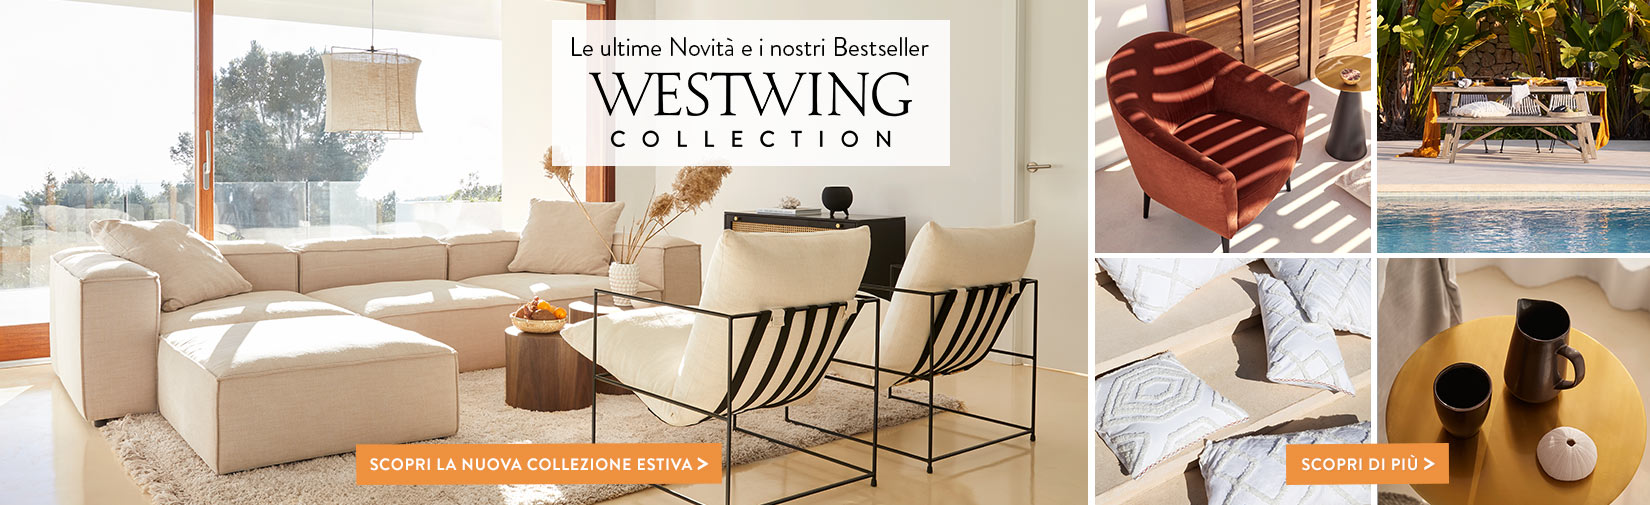 LP-Westwing-Collection_Summer_IT